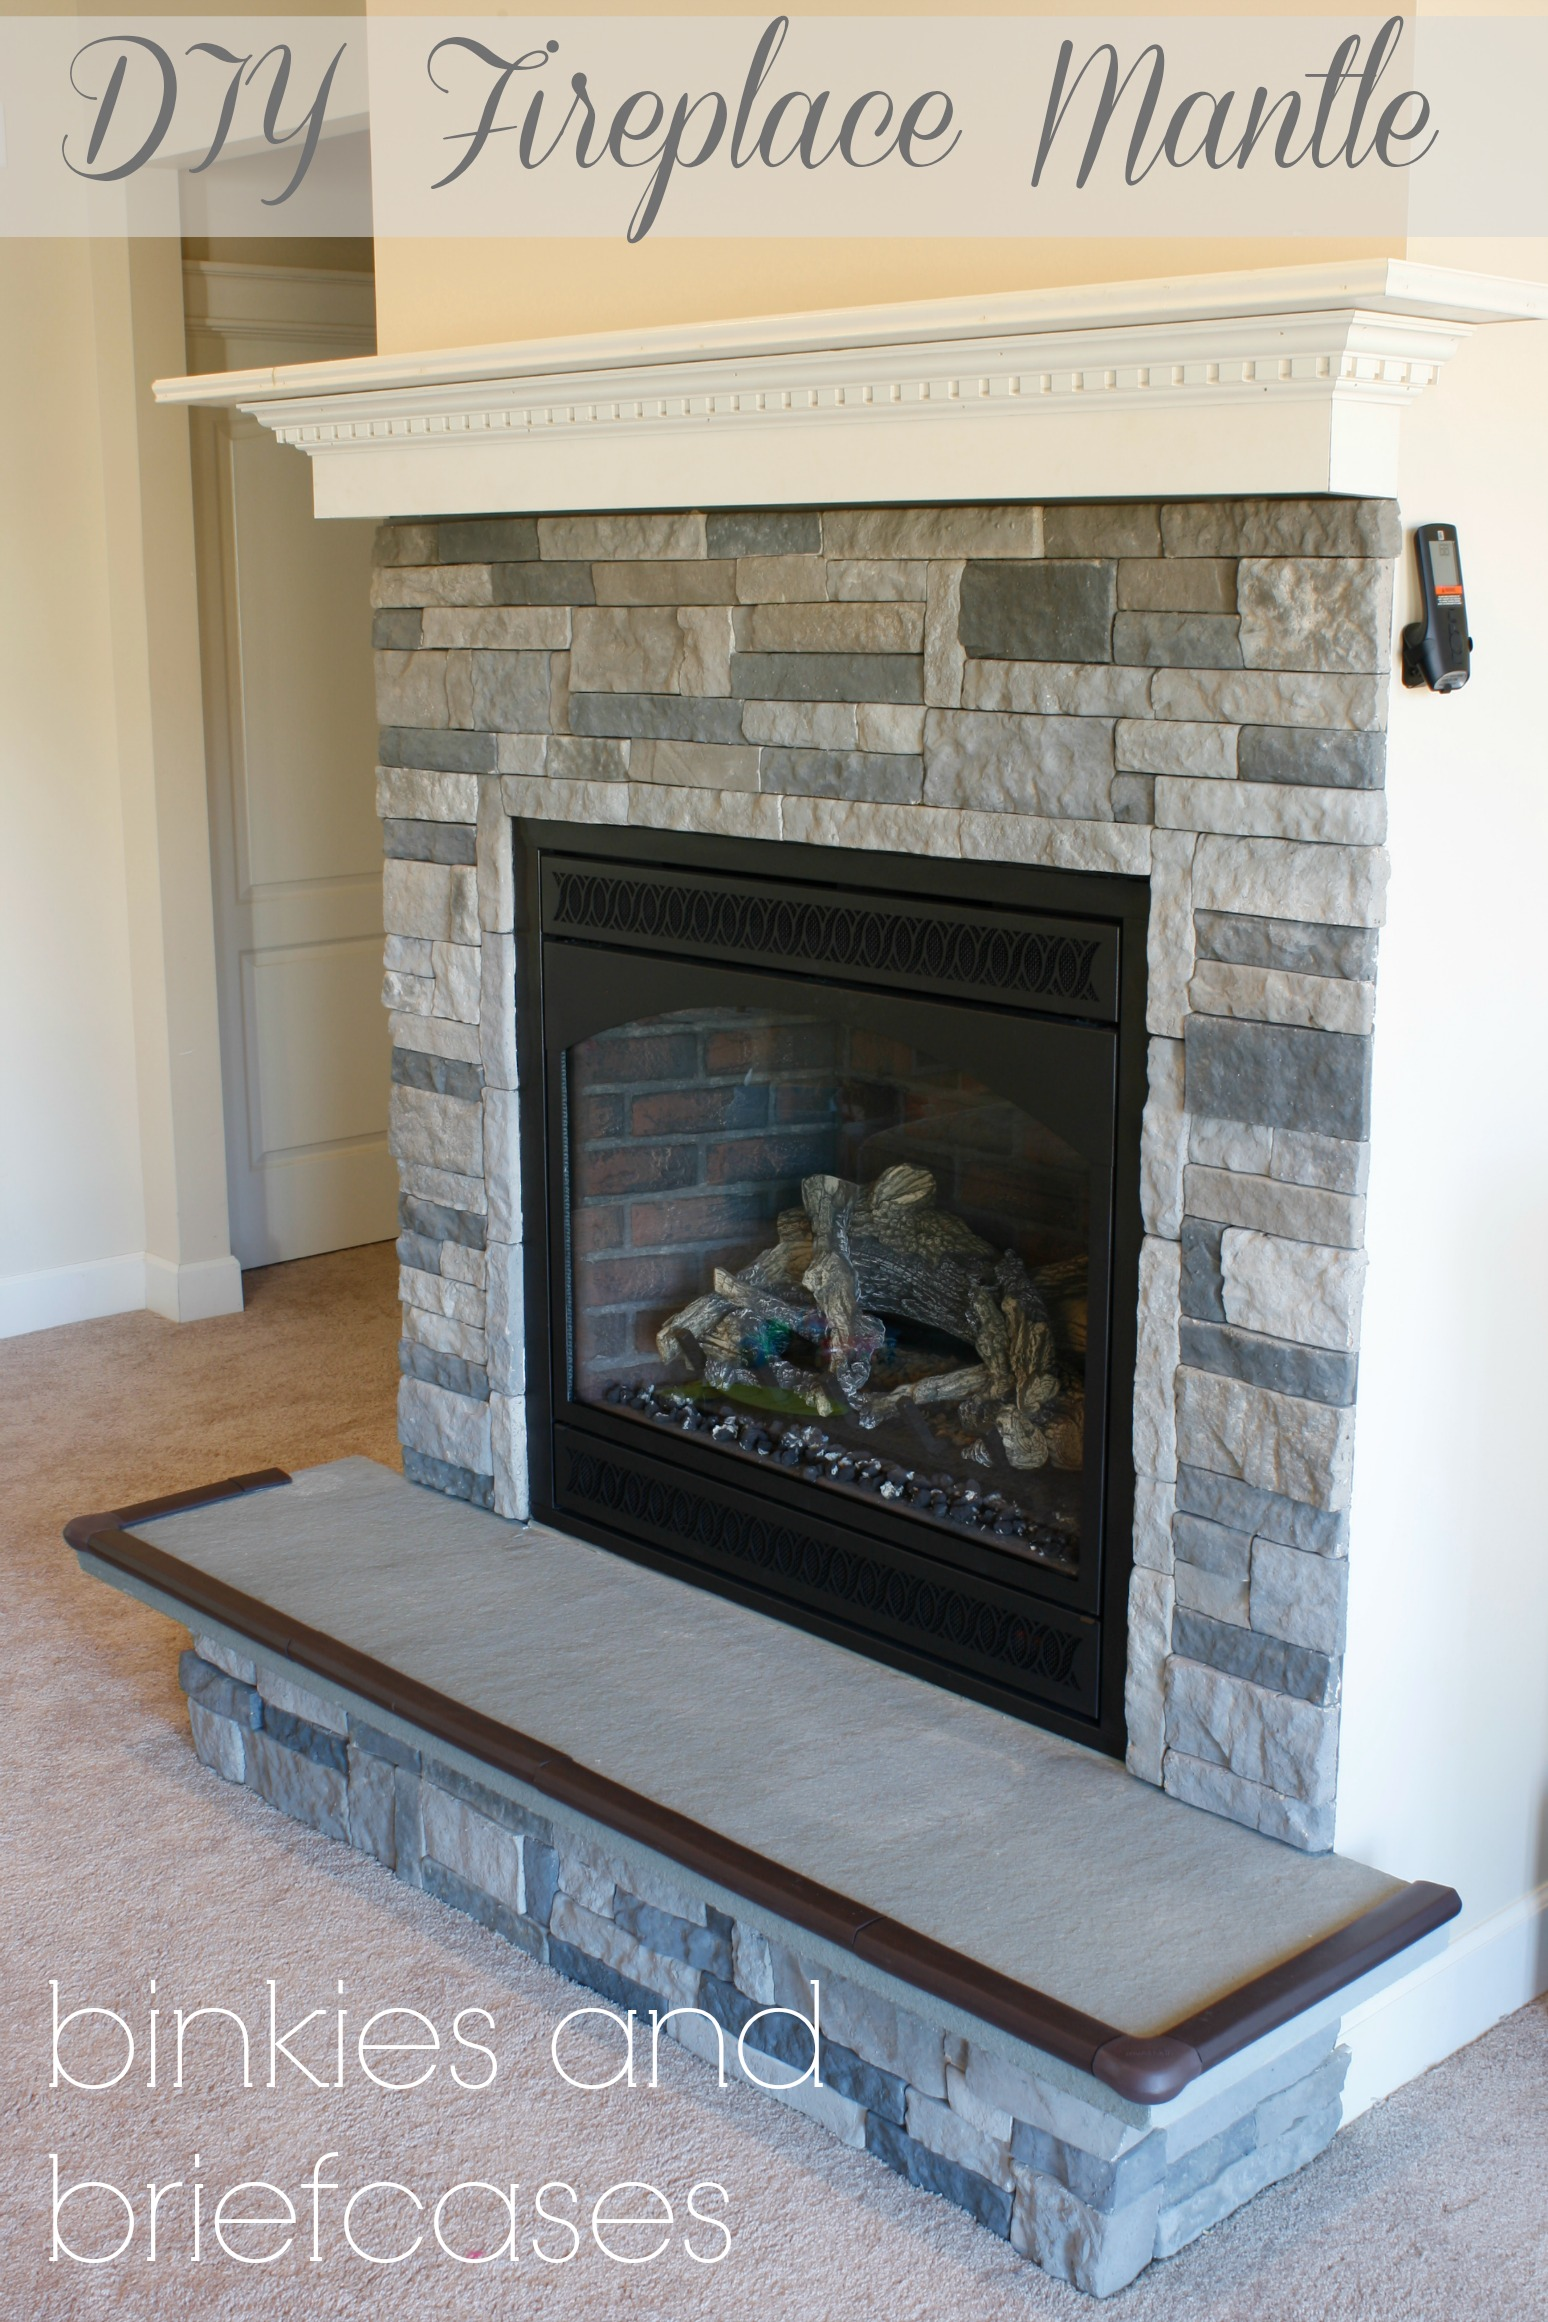 Build Your Own Fireplace Insert Diy Stone Fireplace With Airstone Binkies And Briefcases